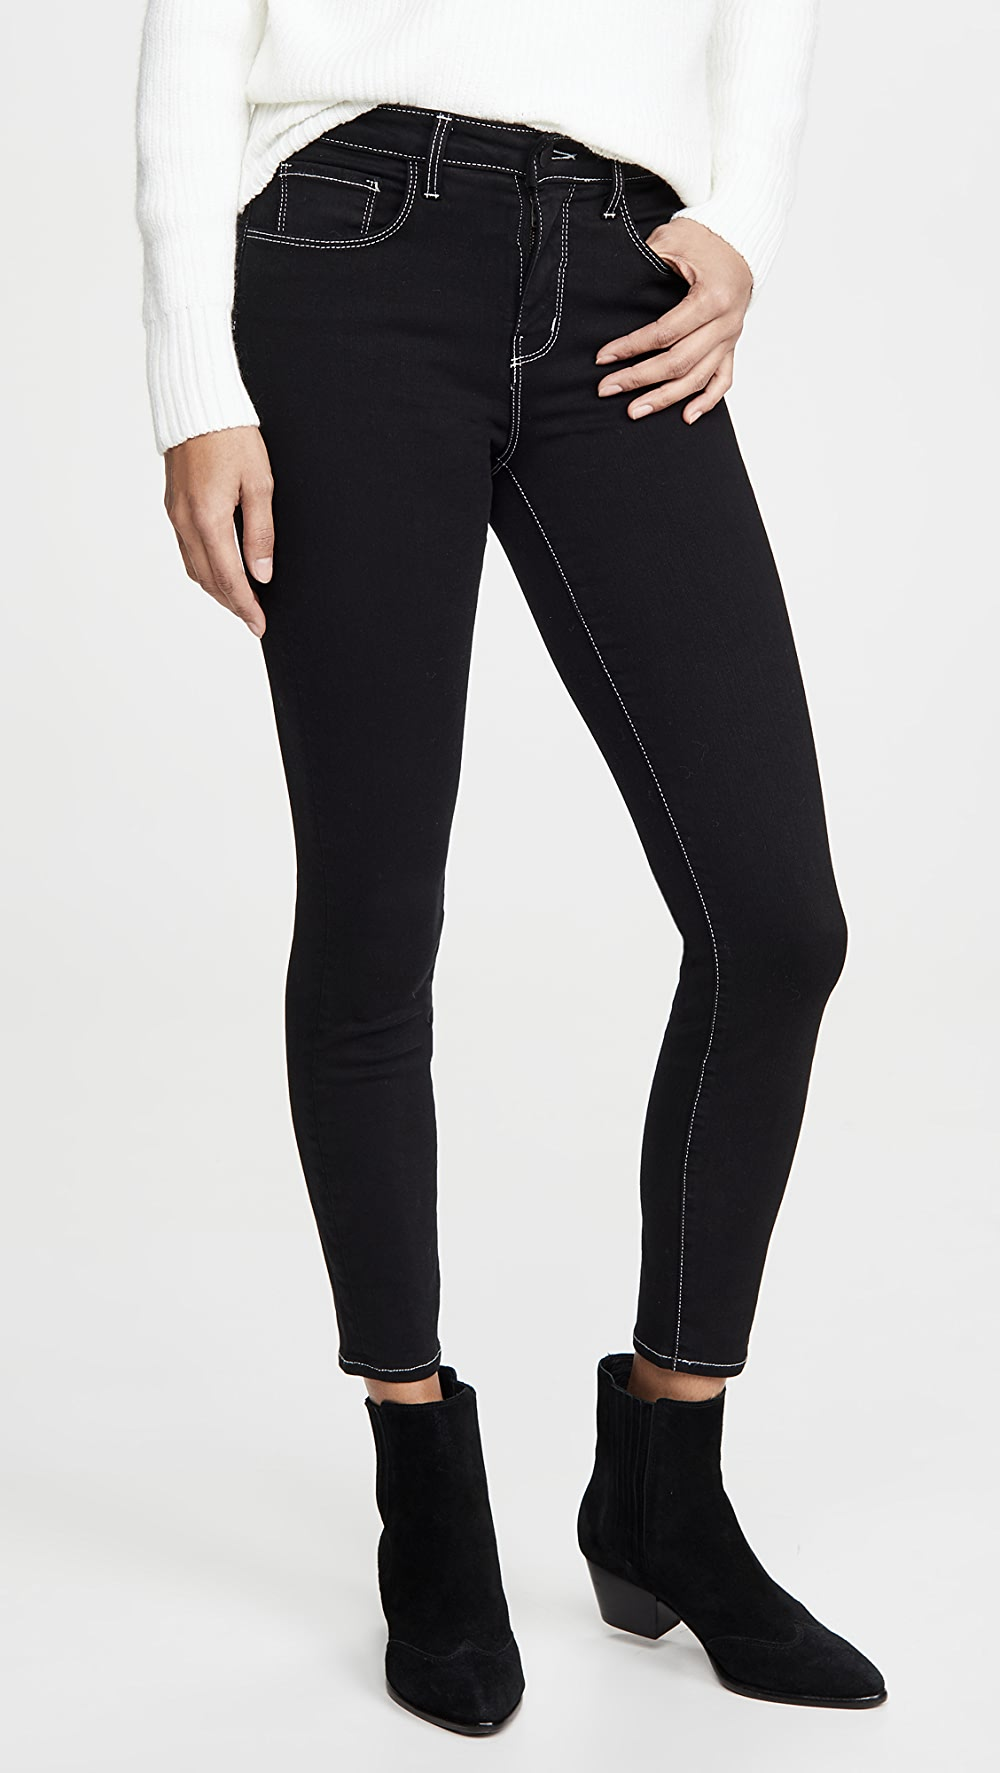 Sincere L'agence - Margot High Waist Skinny Jeans Aesthetic Appearance